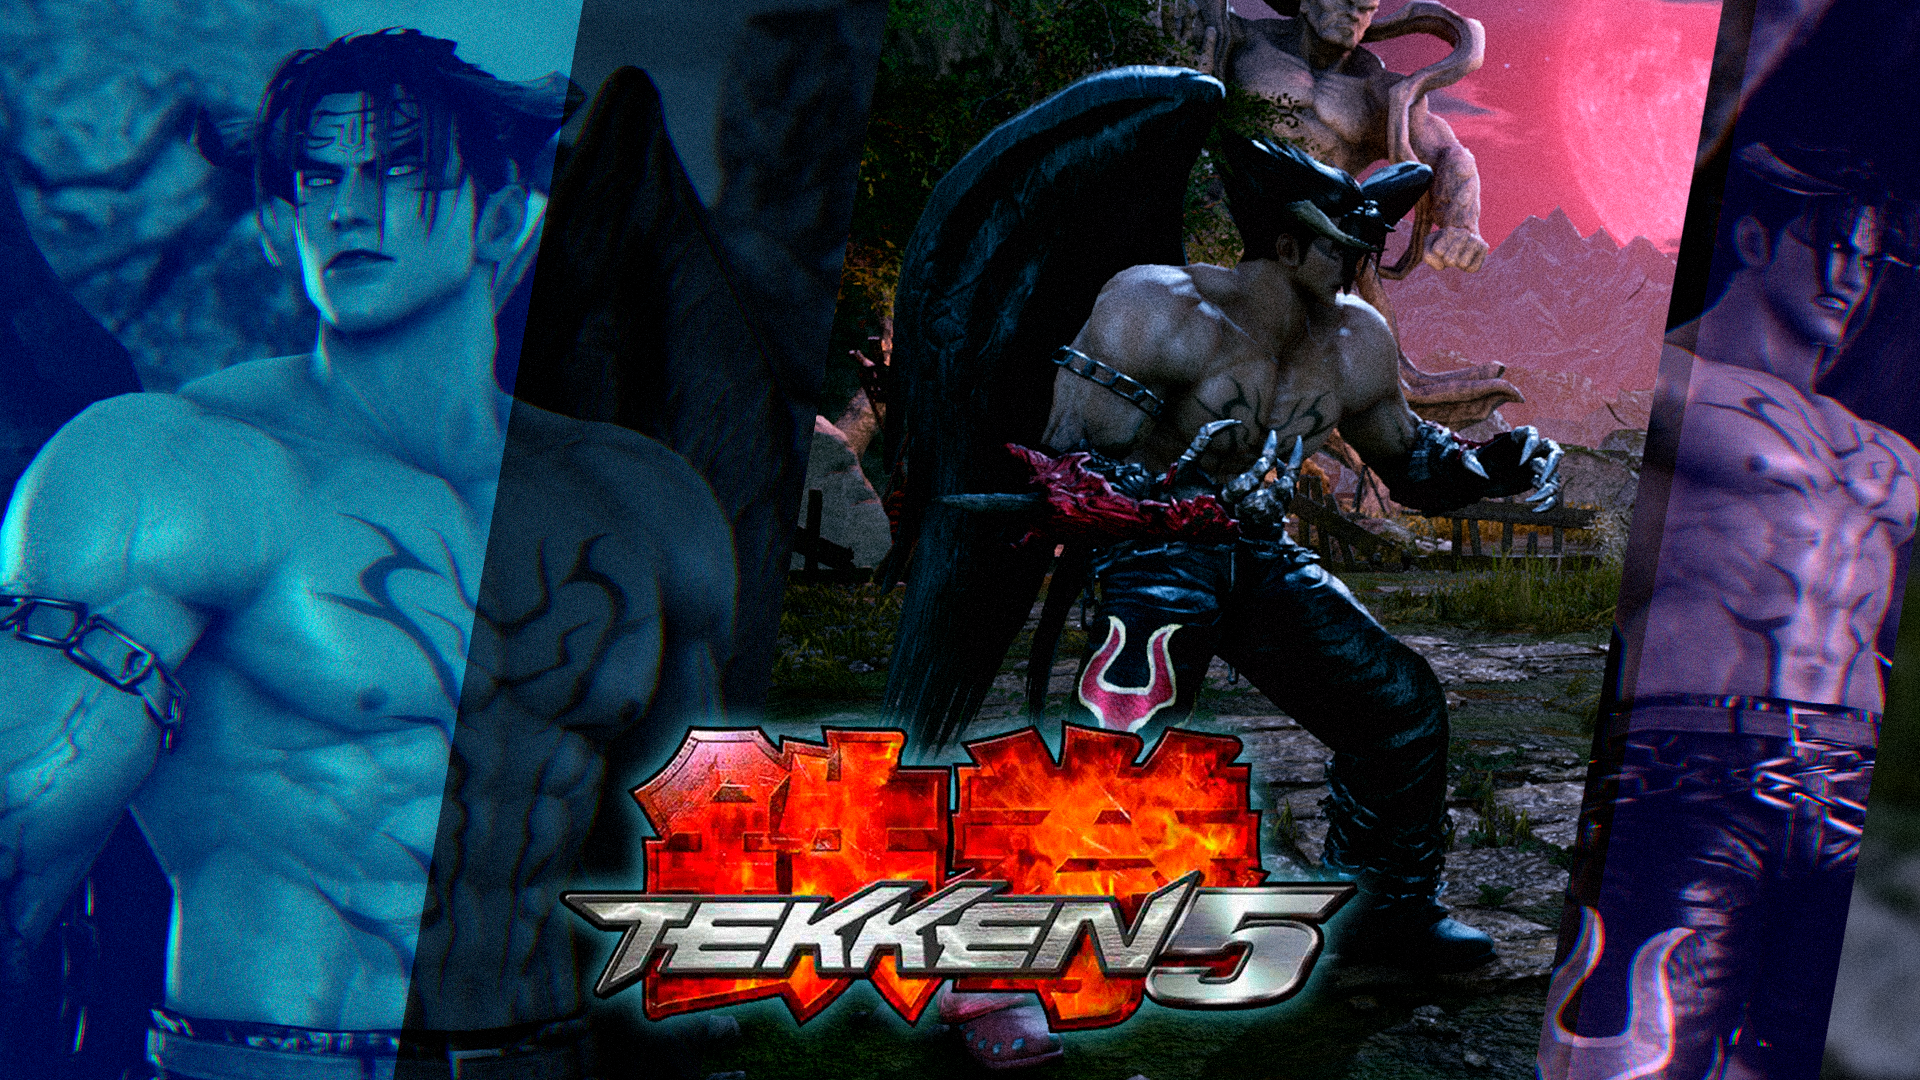 Tekken 5 Inspired Devil Jin By Mattplara On Deviantart